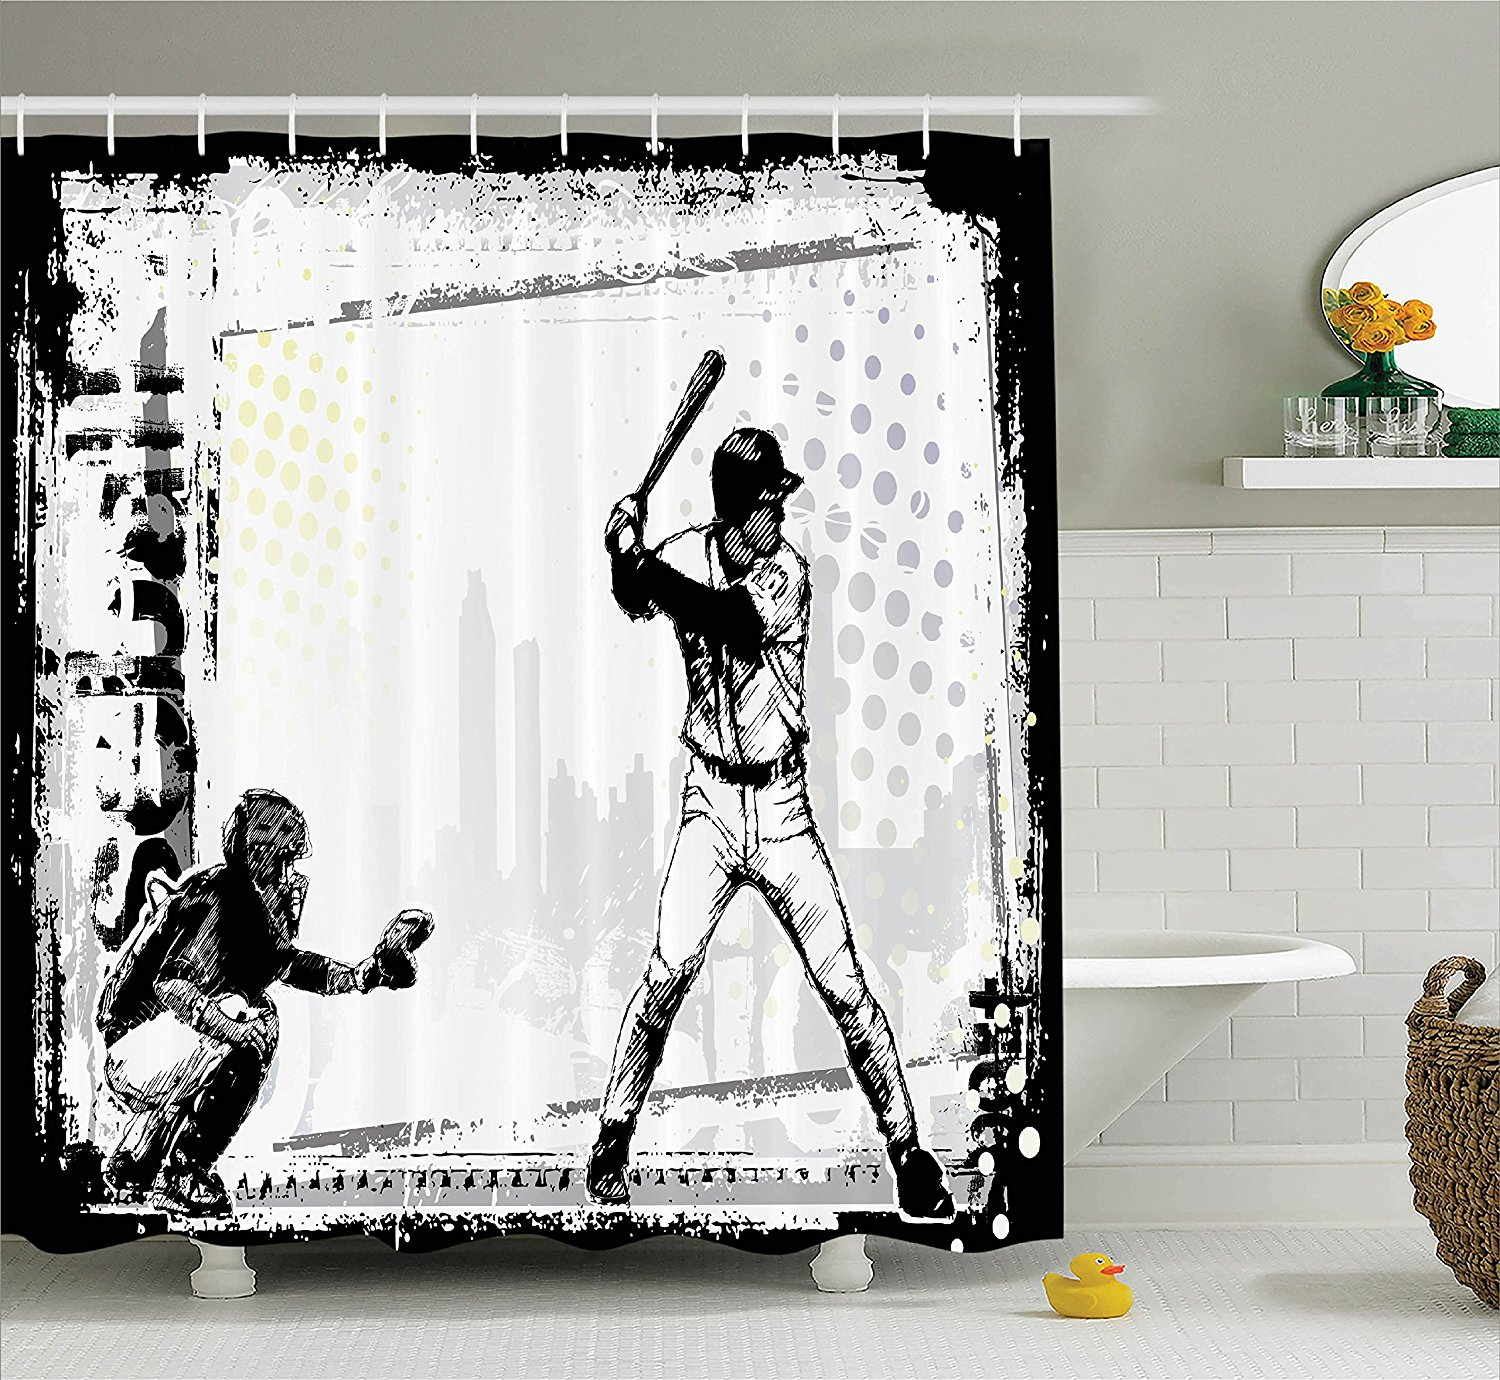 Sports shower curtains - Warm Tour Sports Baseball Themed American Sport Team Shower Curtain Polyester Curtain Hospital Hotel With